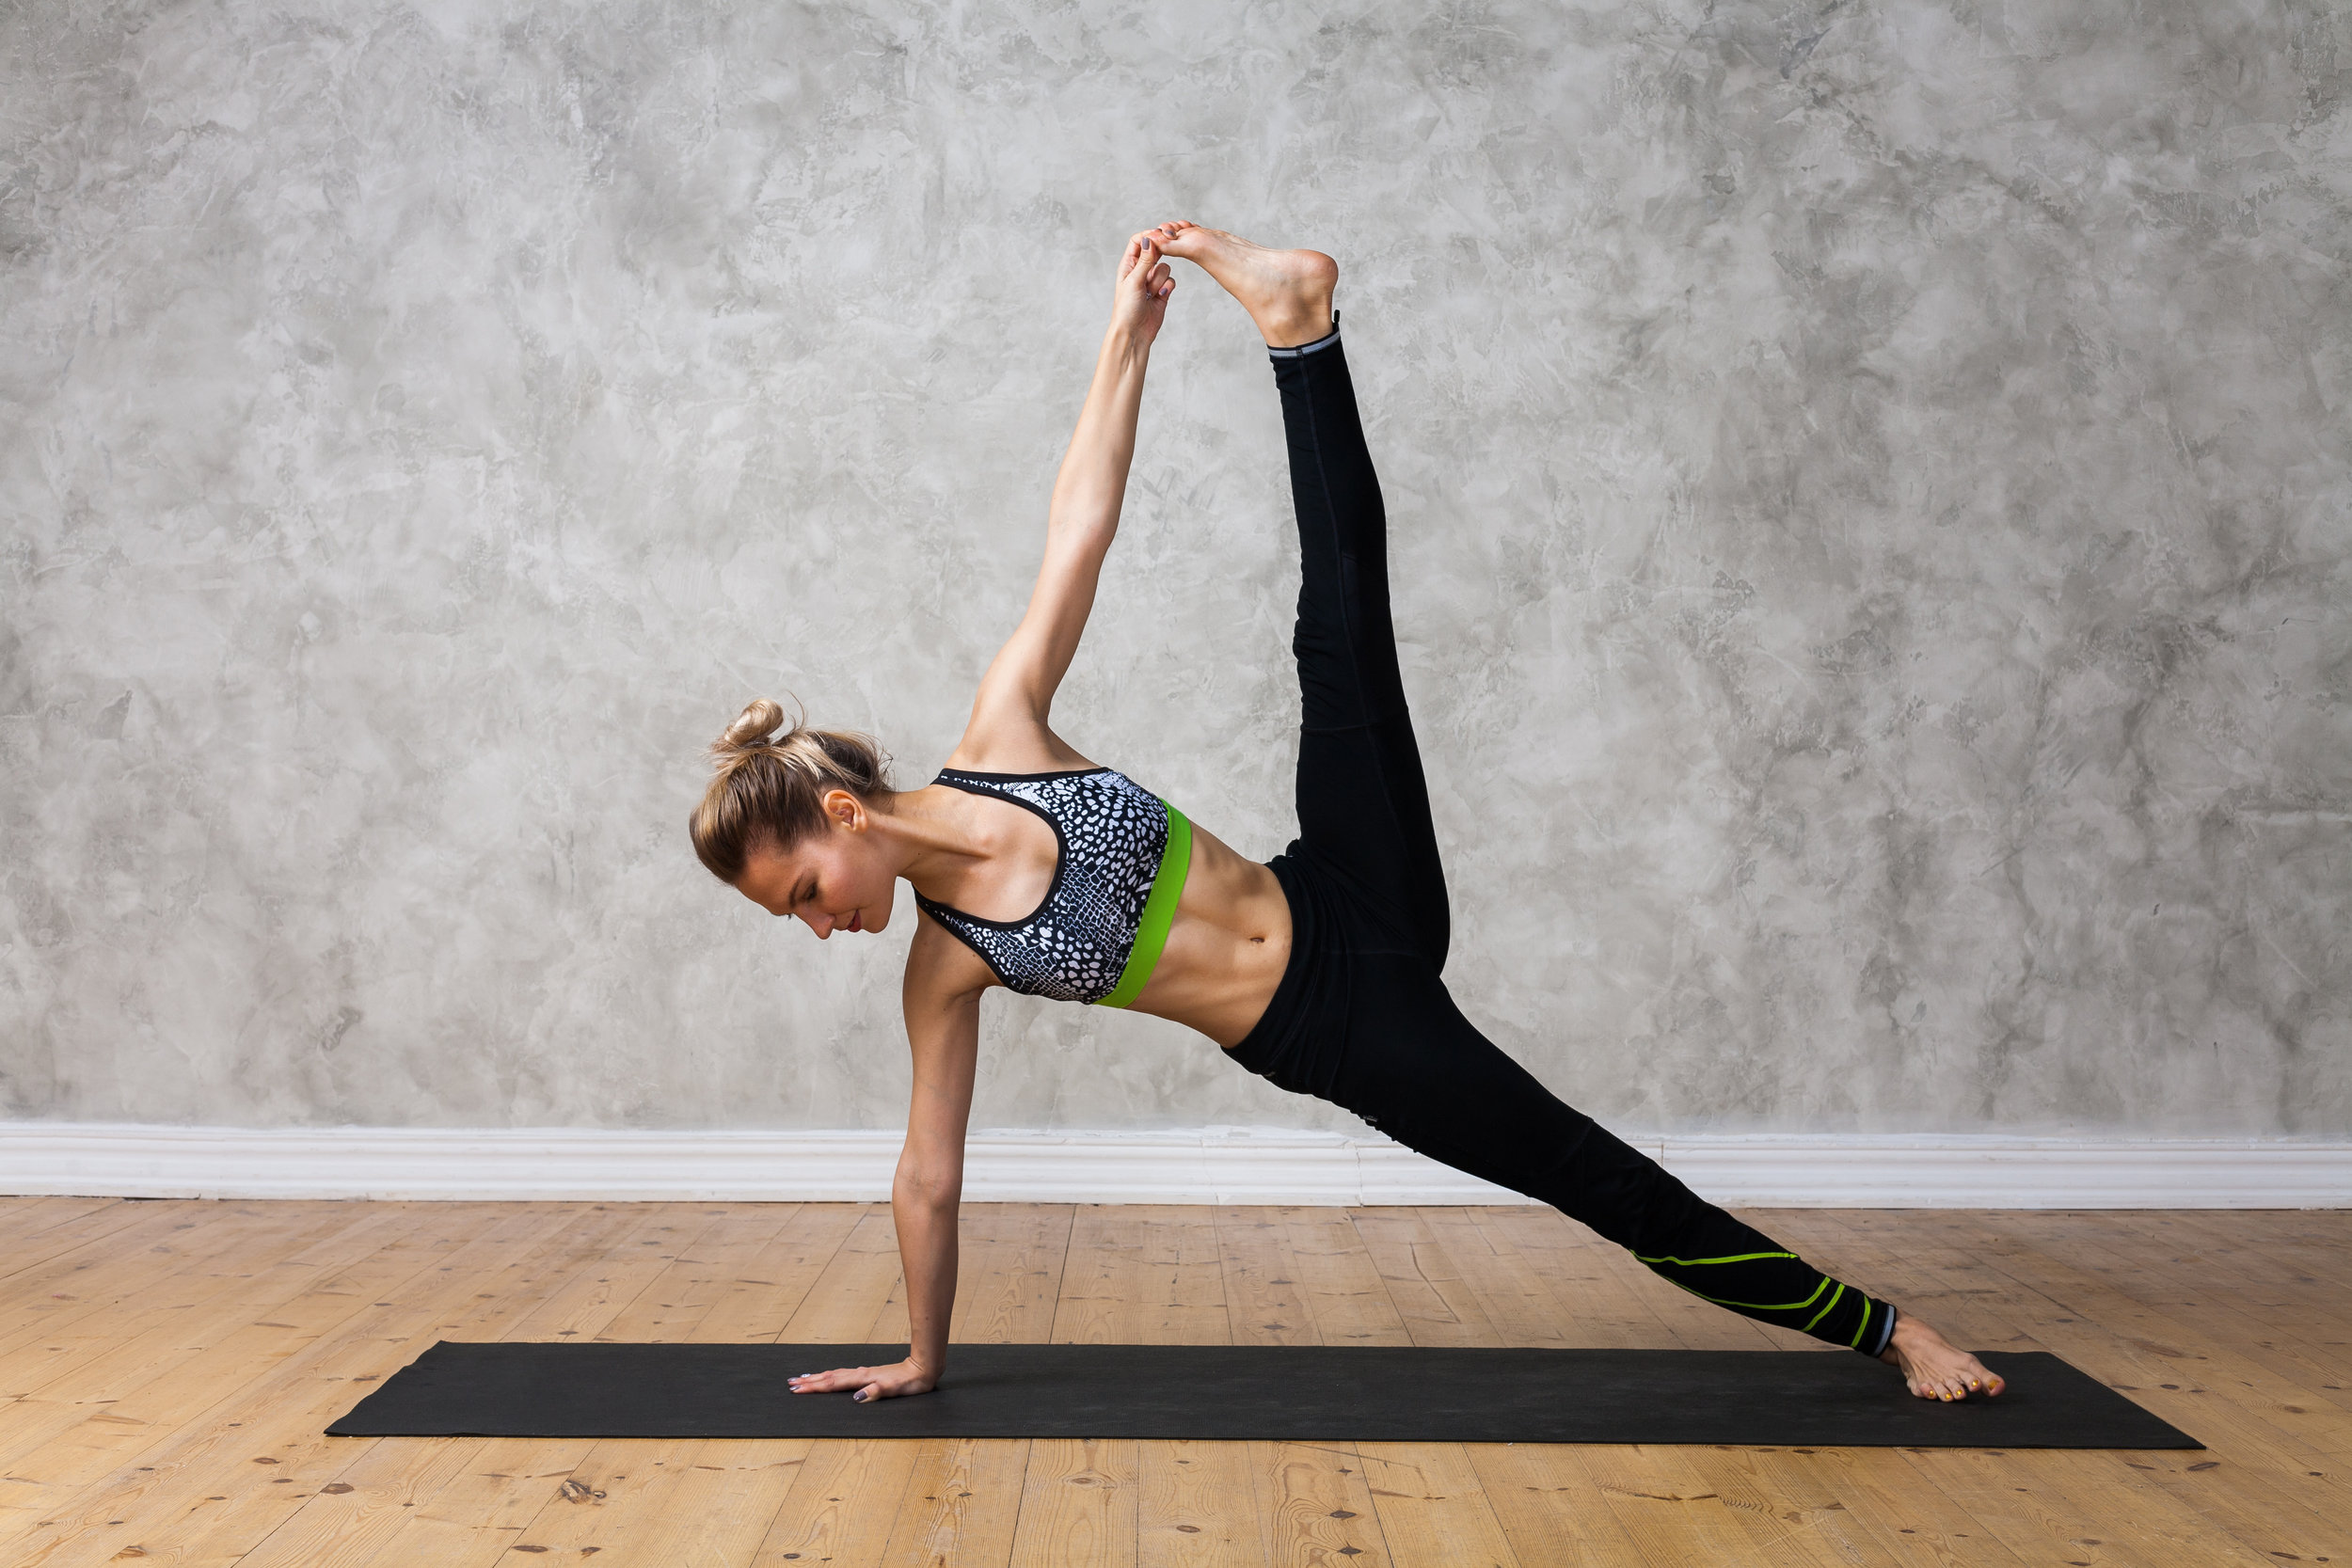 Young woman practicing yoga Side plank pose, Vasisthasana advanced against texturized wall / urban background